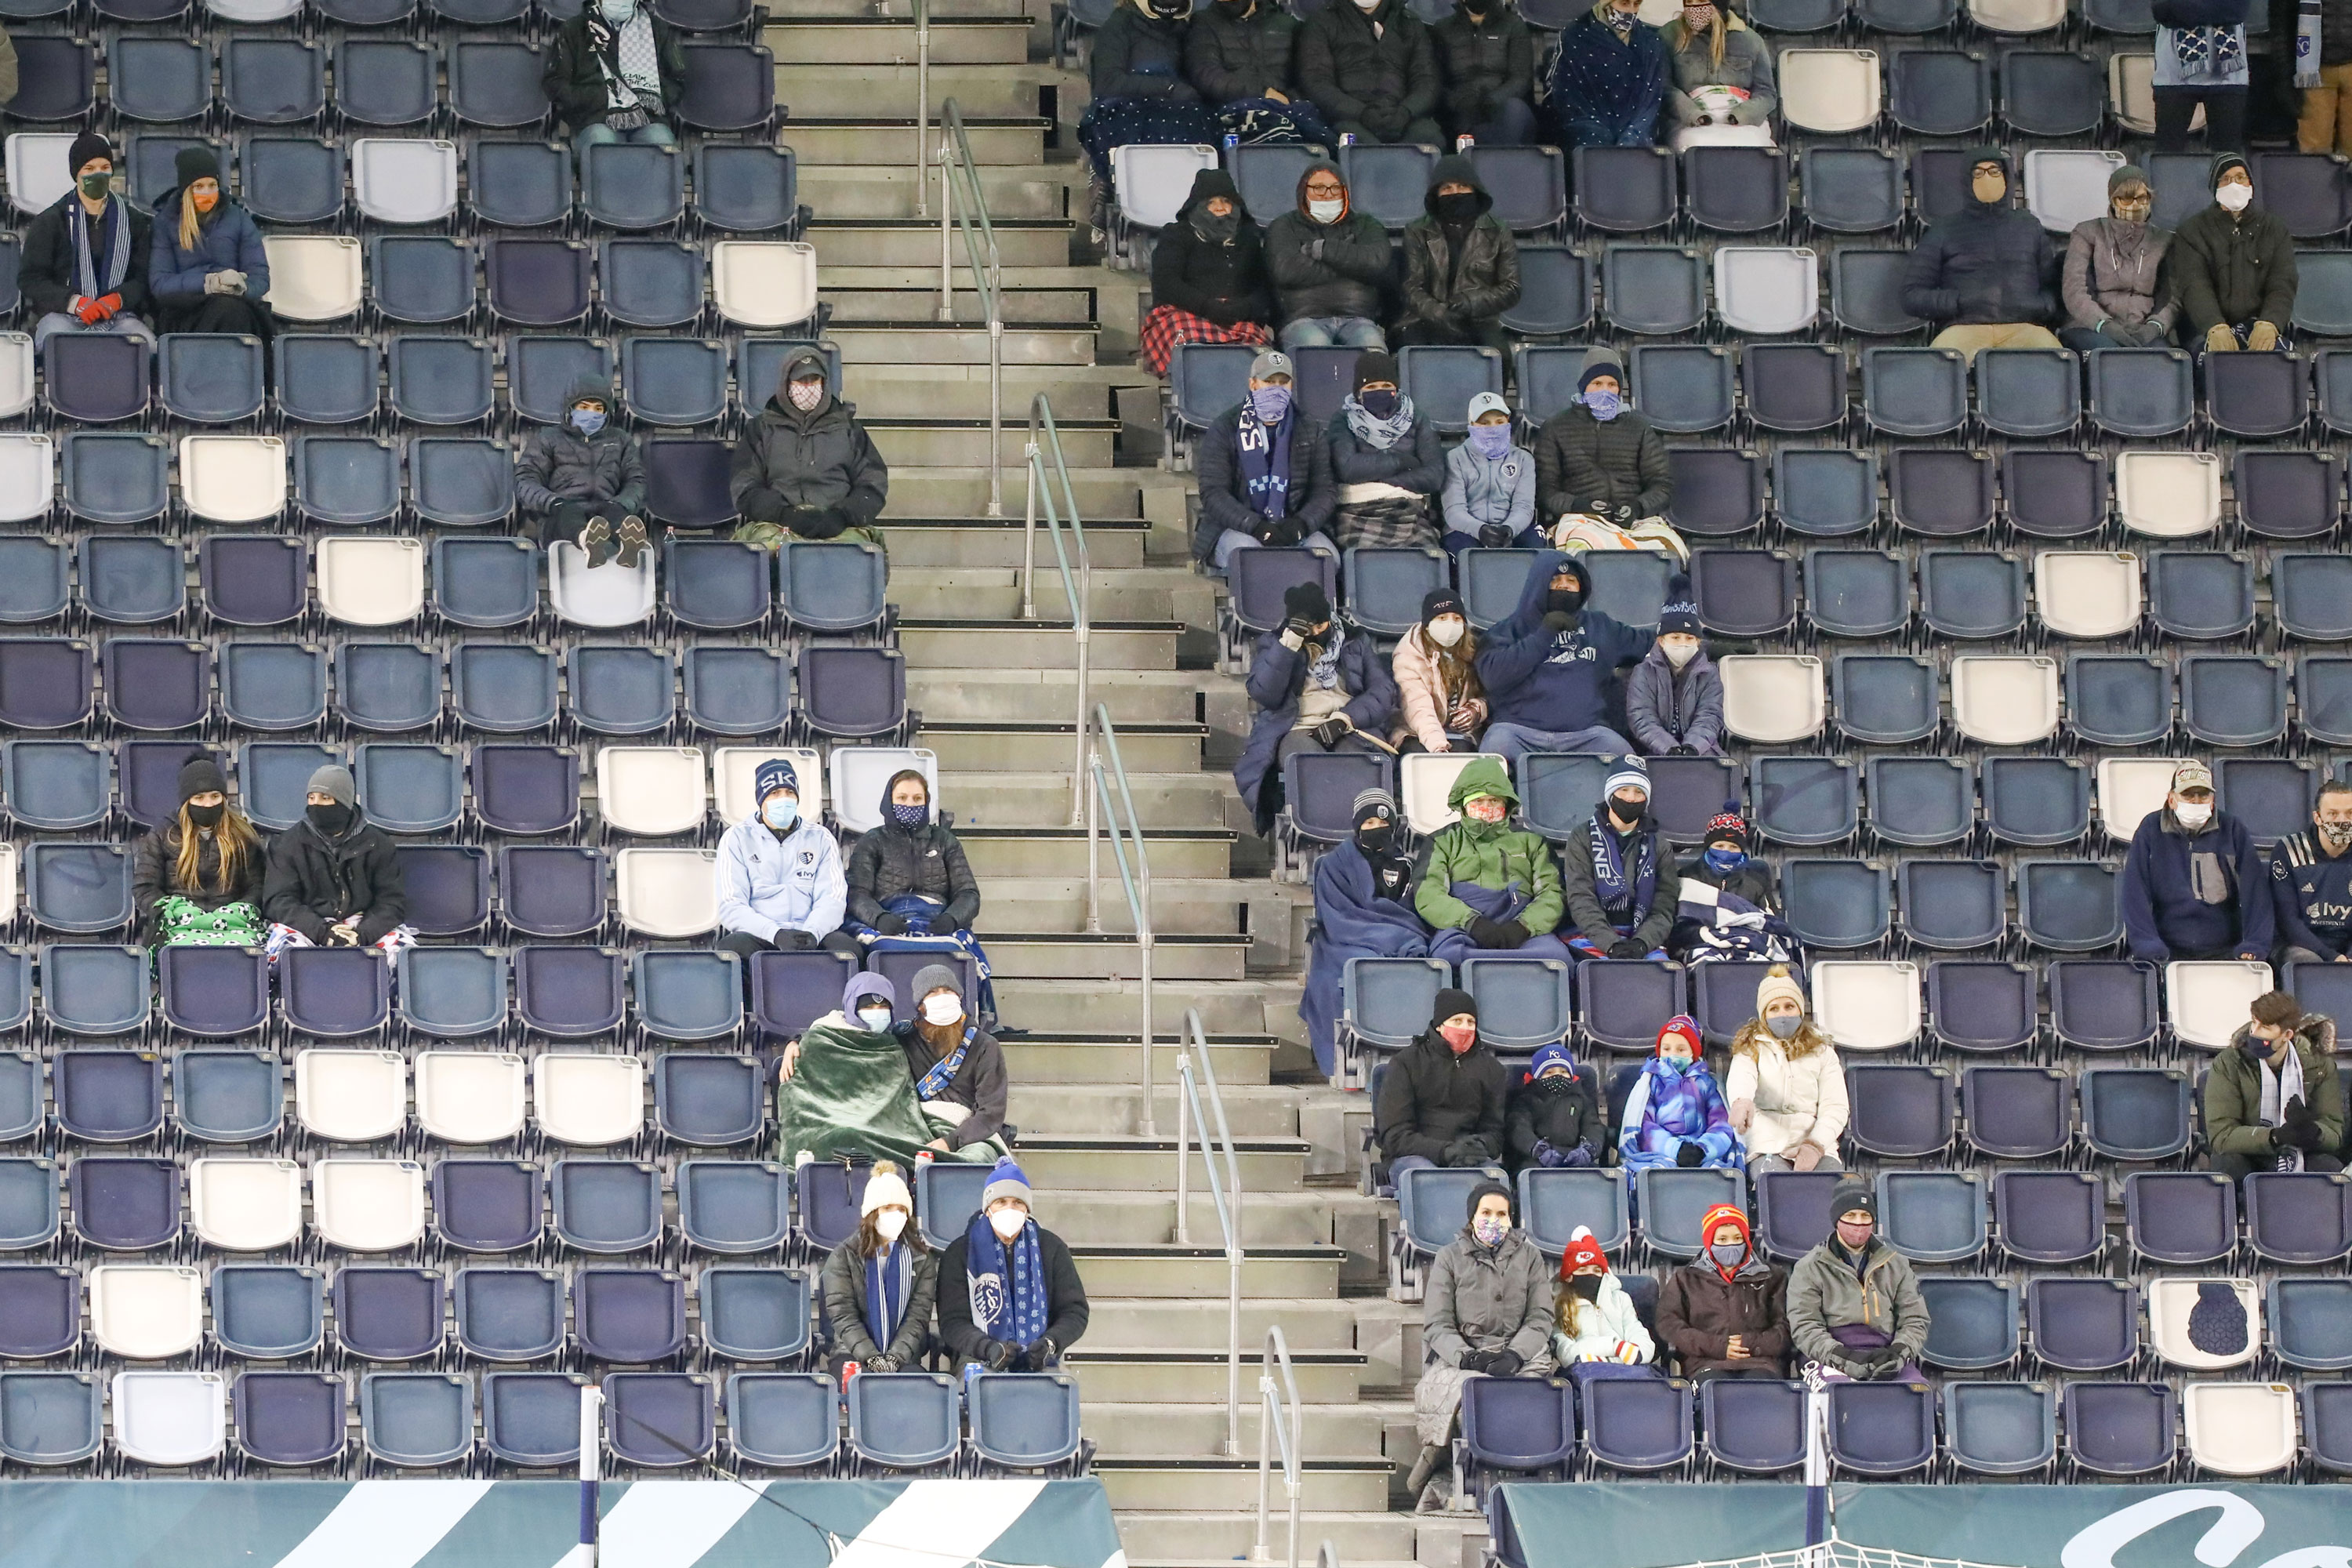 Fans try to stay warm while also wearing masks and social distancing in the first half of an MLS match between the Colorado Rapids and Sporting Kansas City on October 24 at Children's Mercy Park in Kansas City, KS.